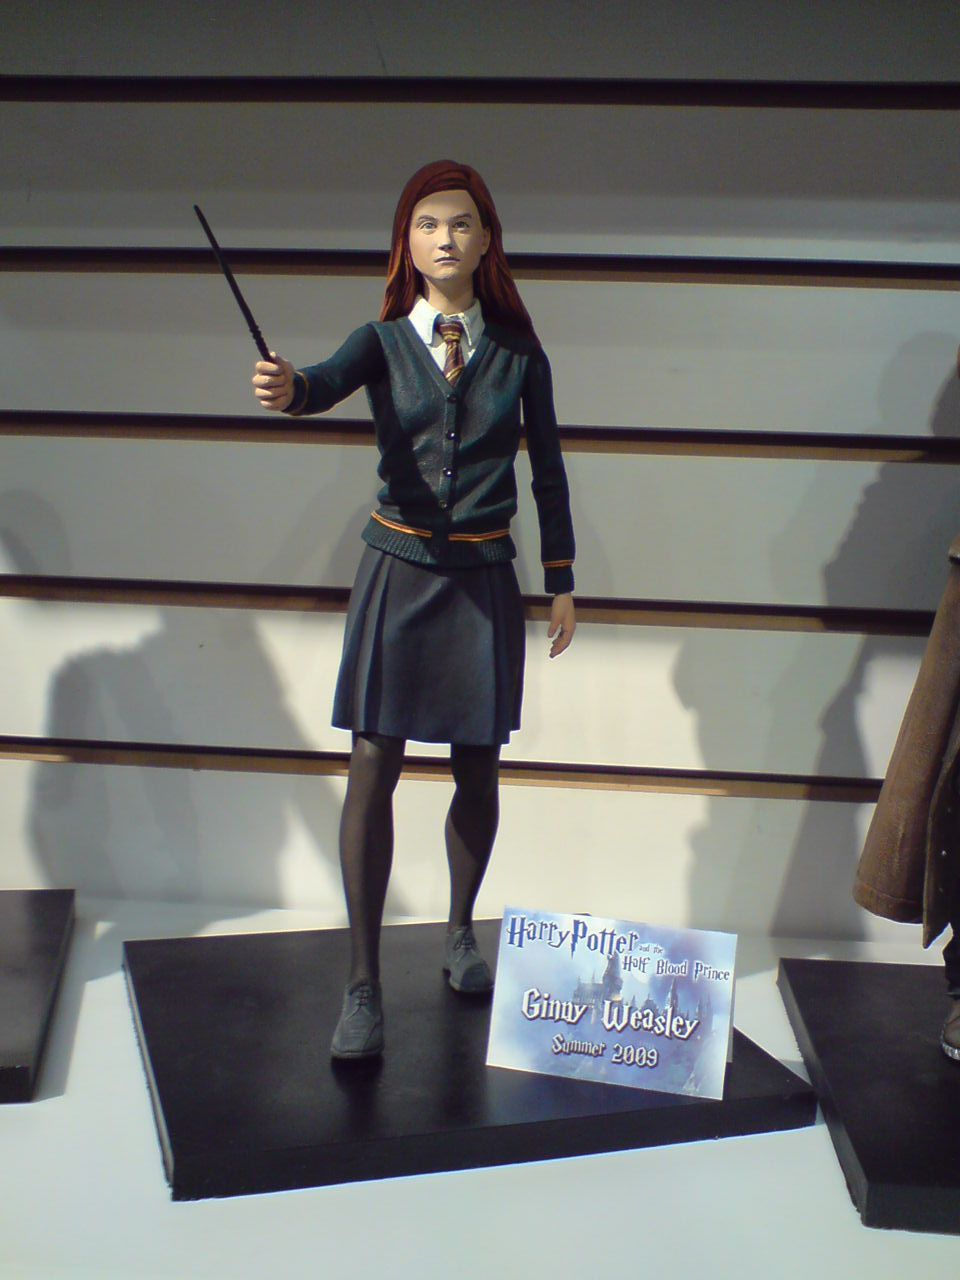 harry potter and the half blood prince from toy fair 2009